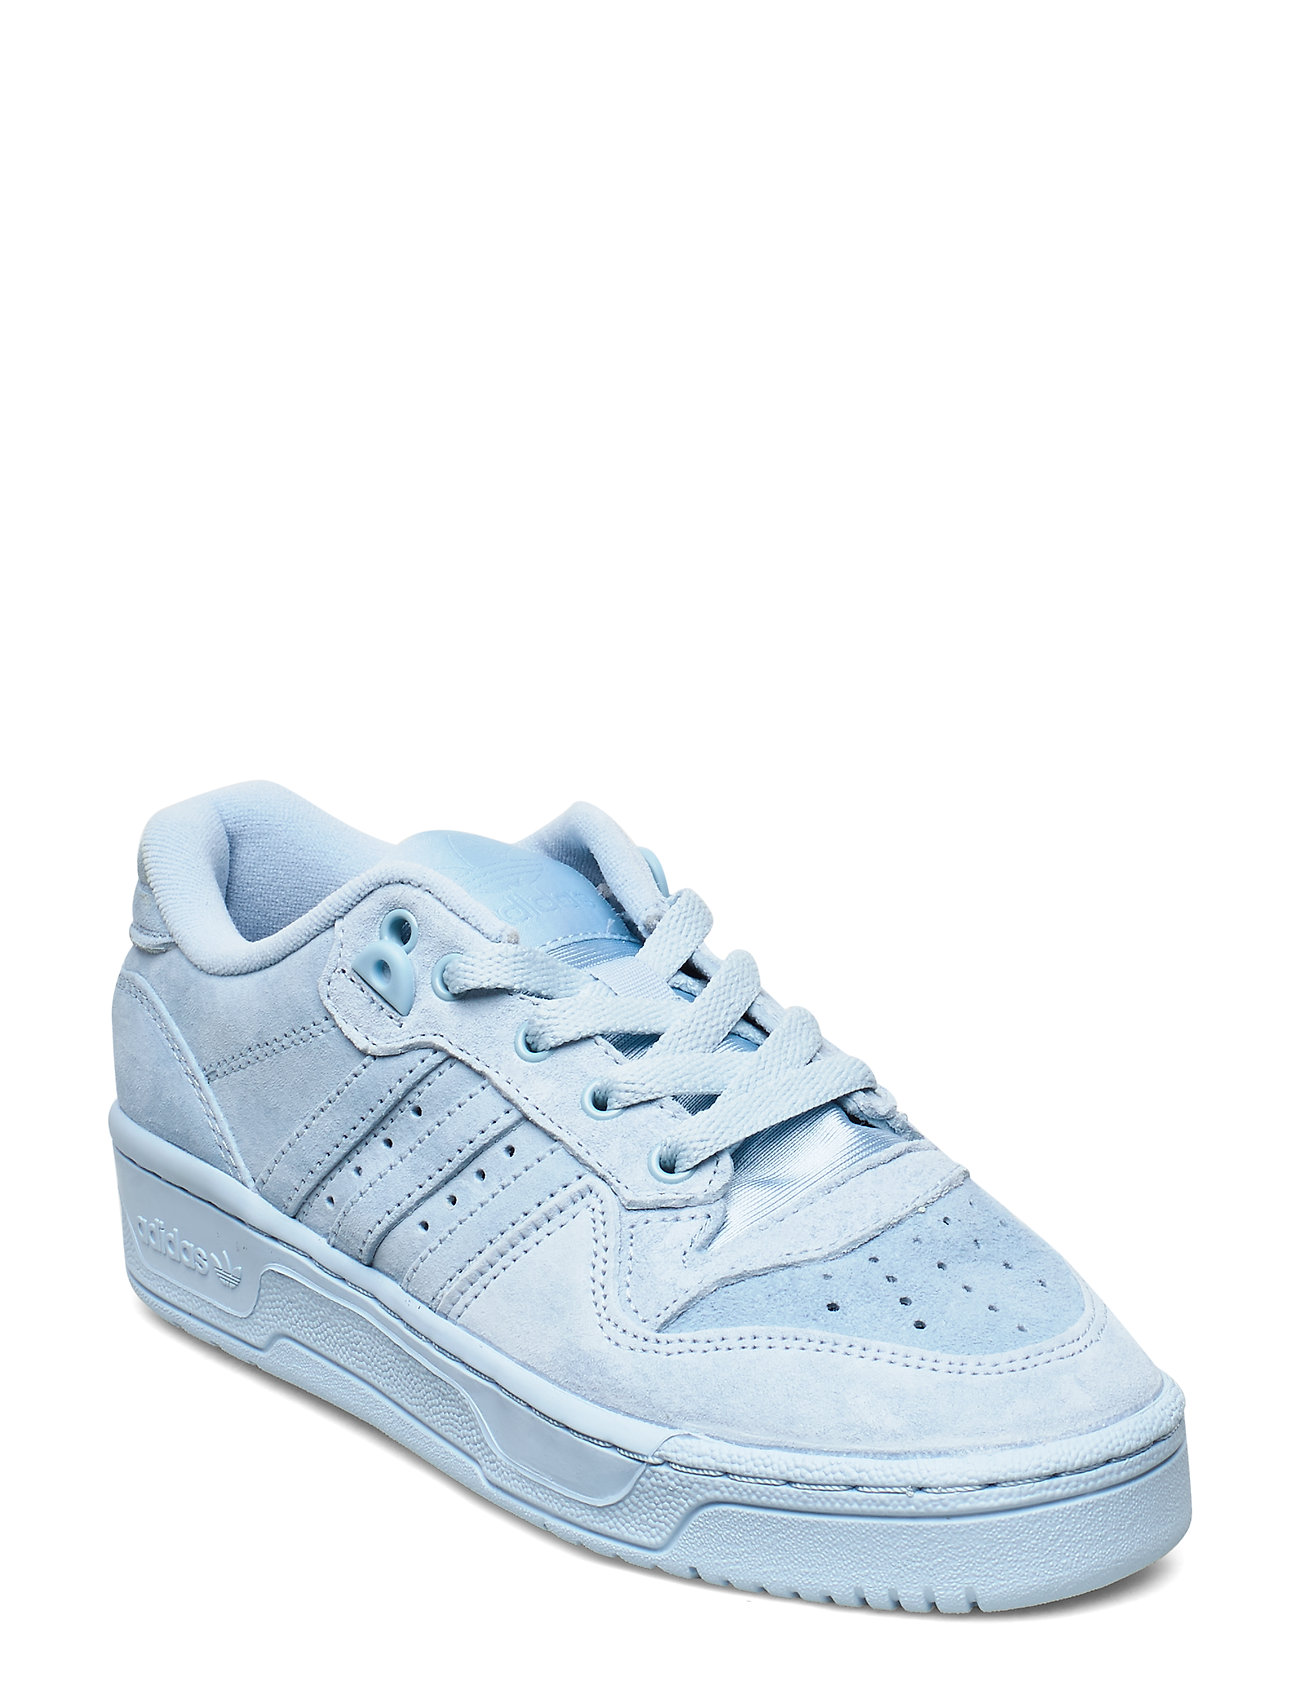 adidas Originals RIVALRY LOW J - CLESKY/CLESKY/FTWWHT